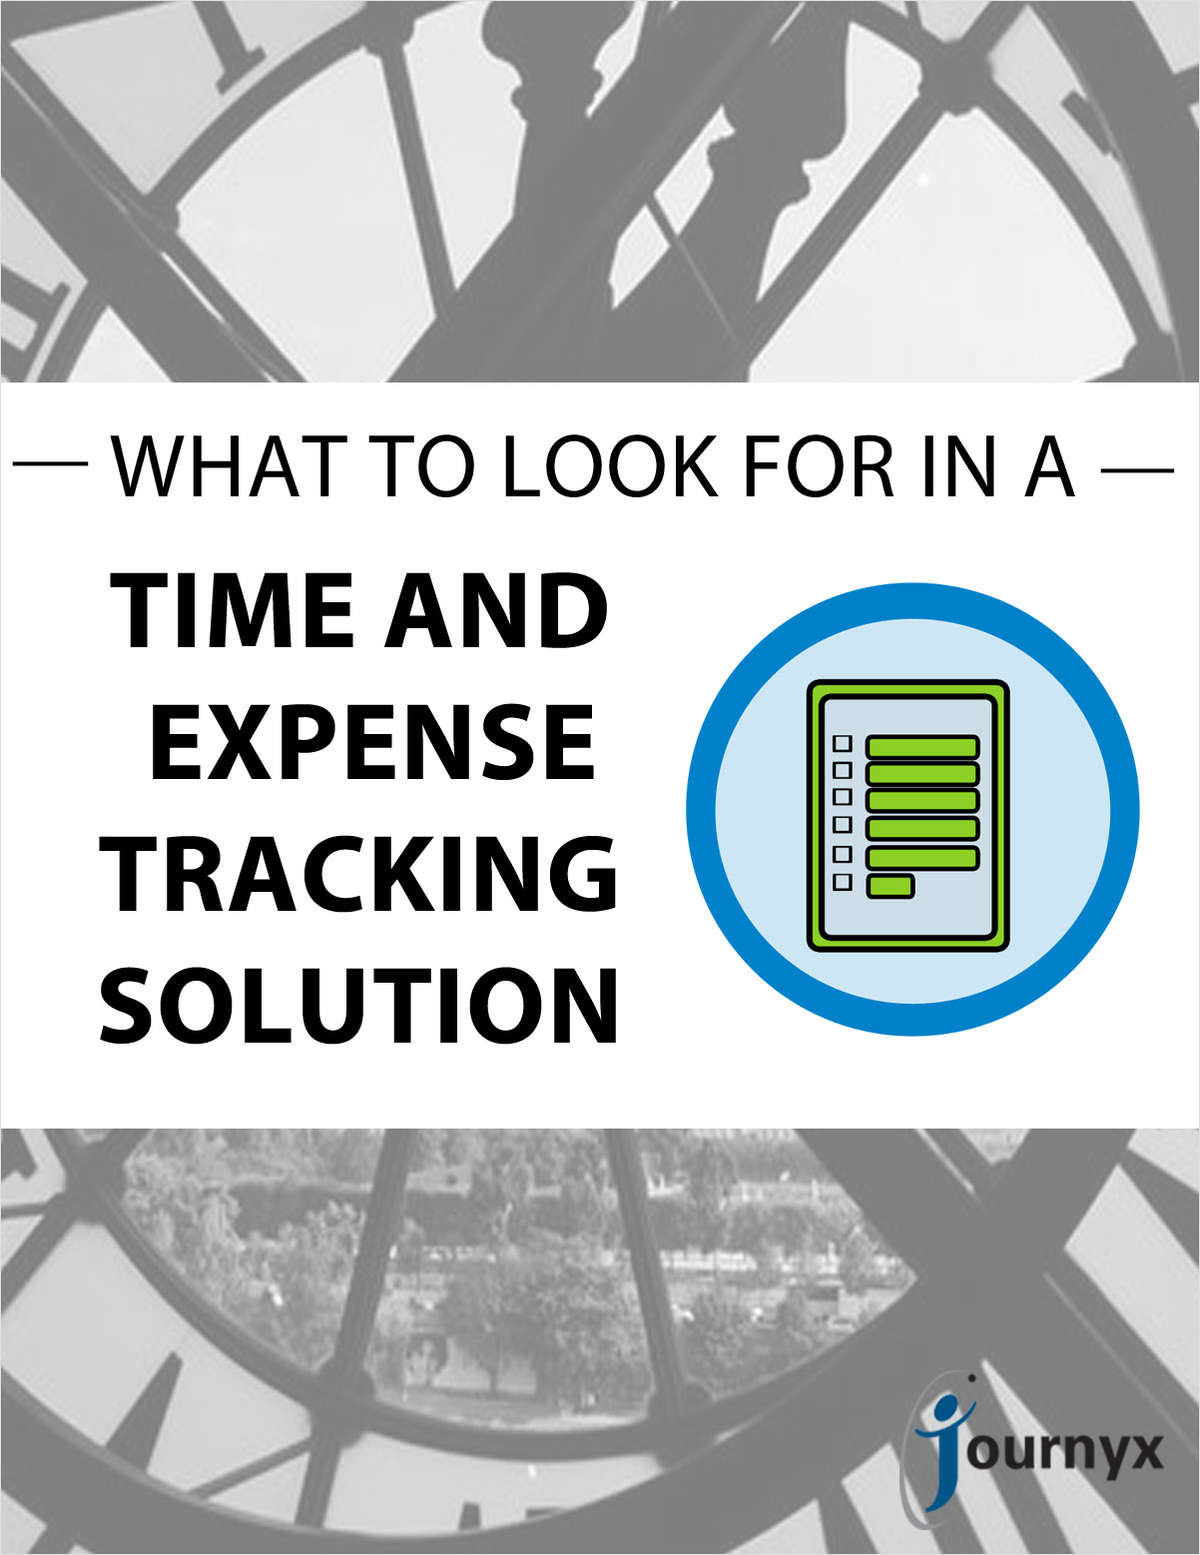 What to Look For in a Time and Expense Tracking Solution